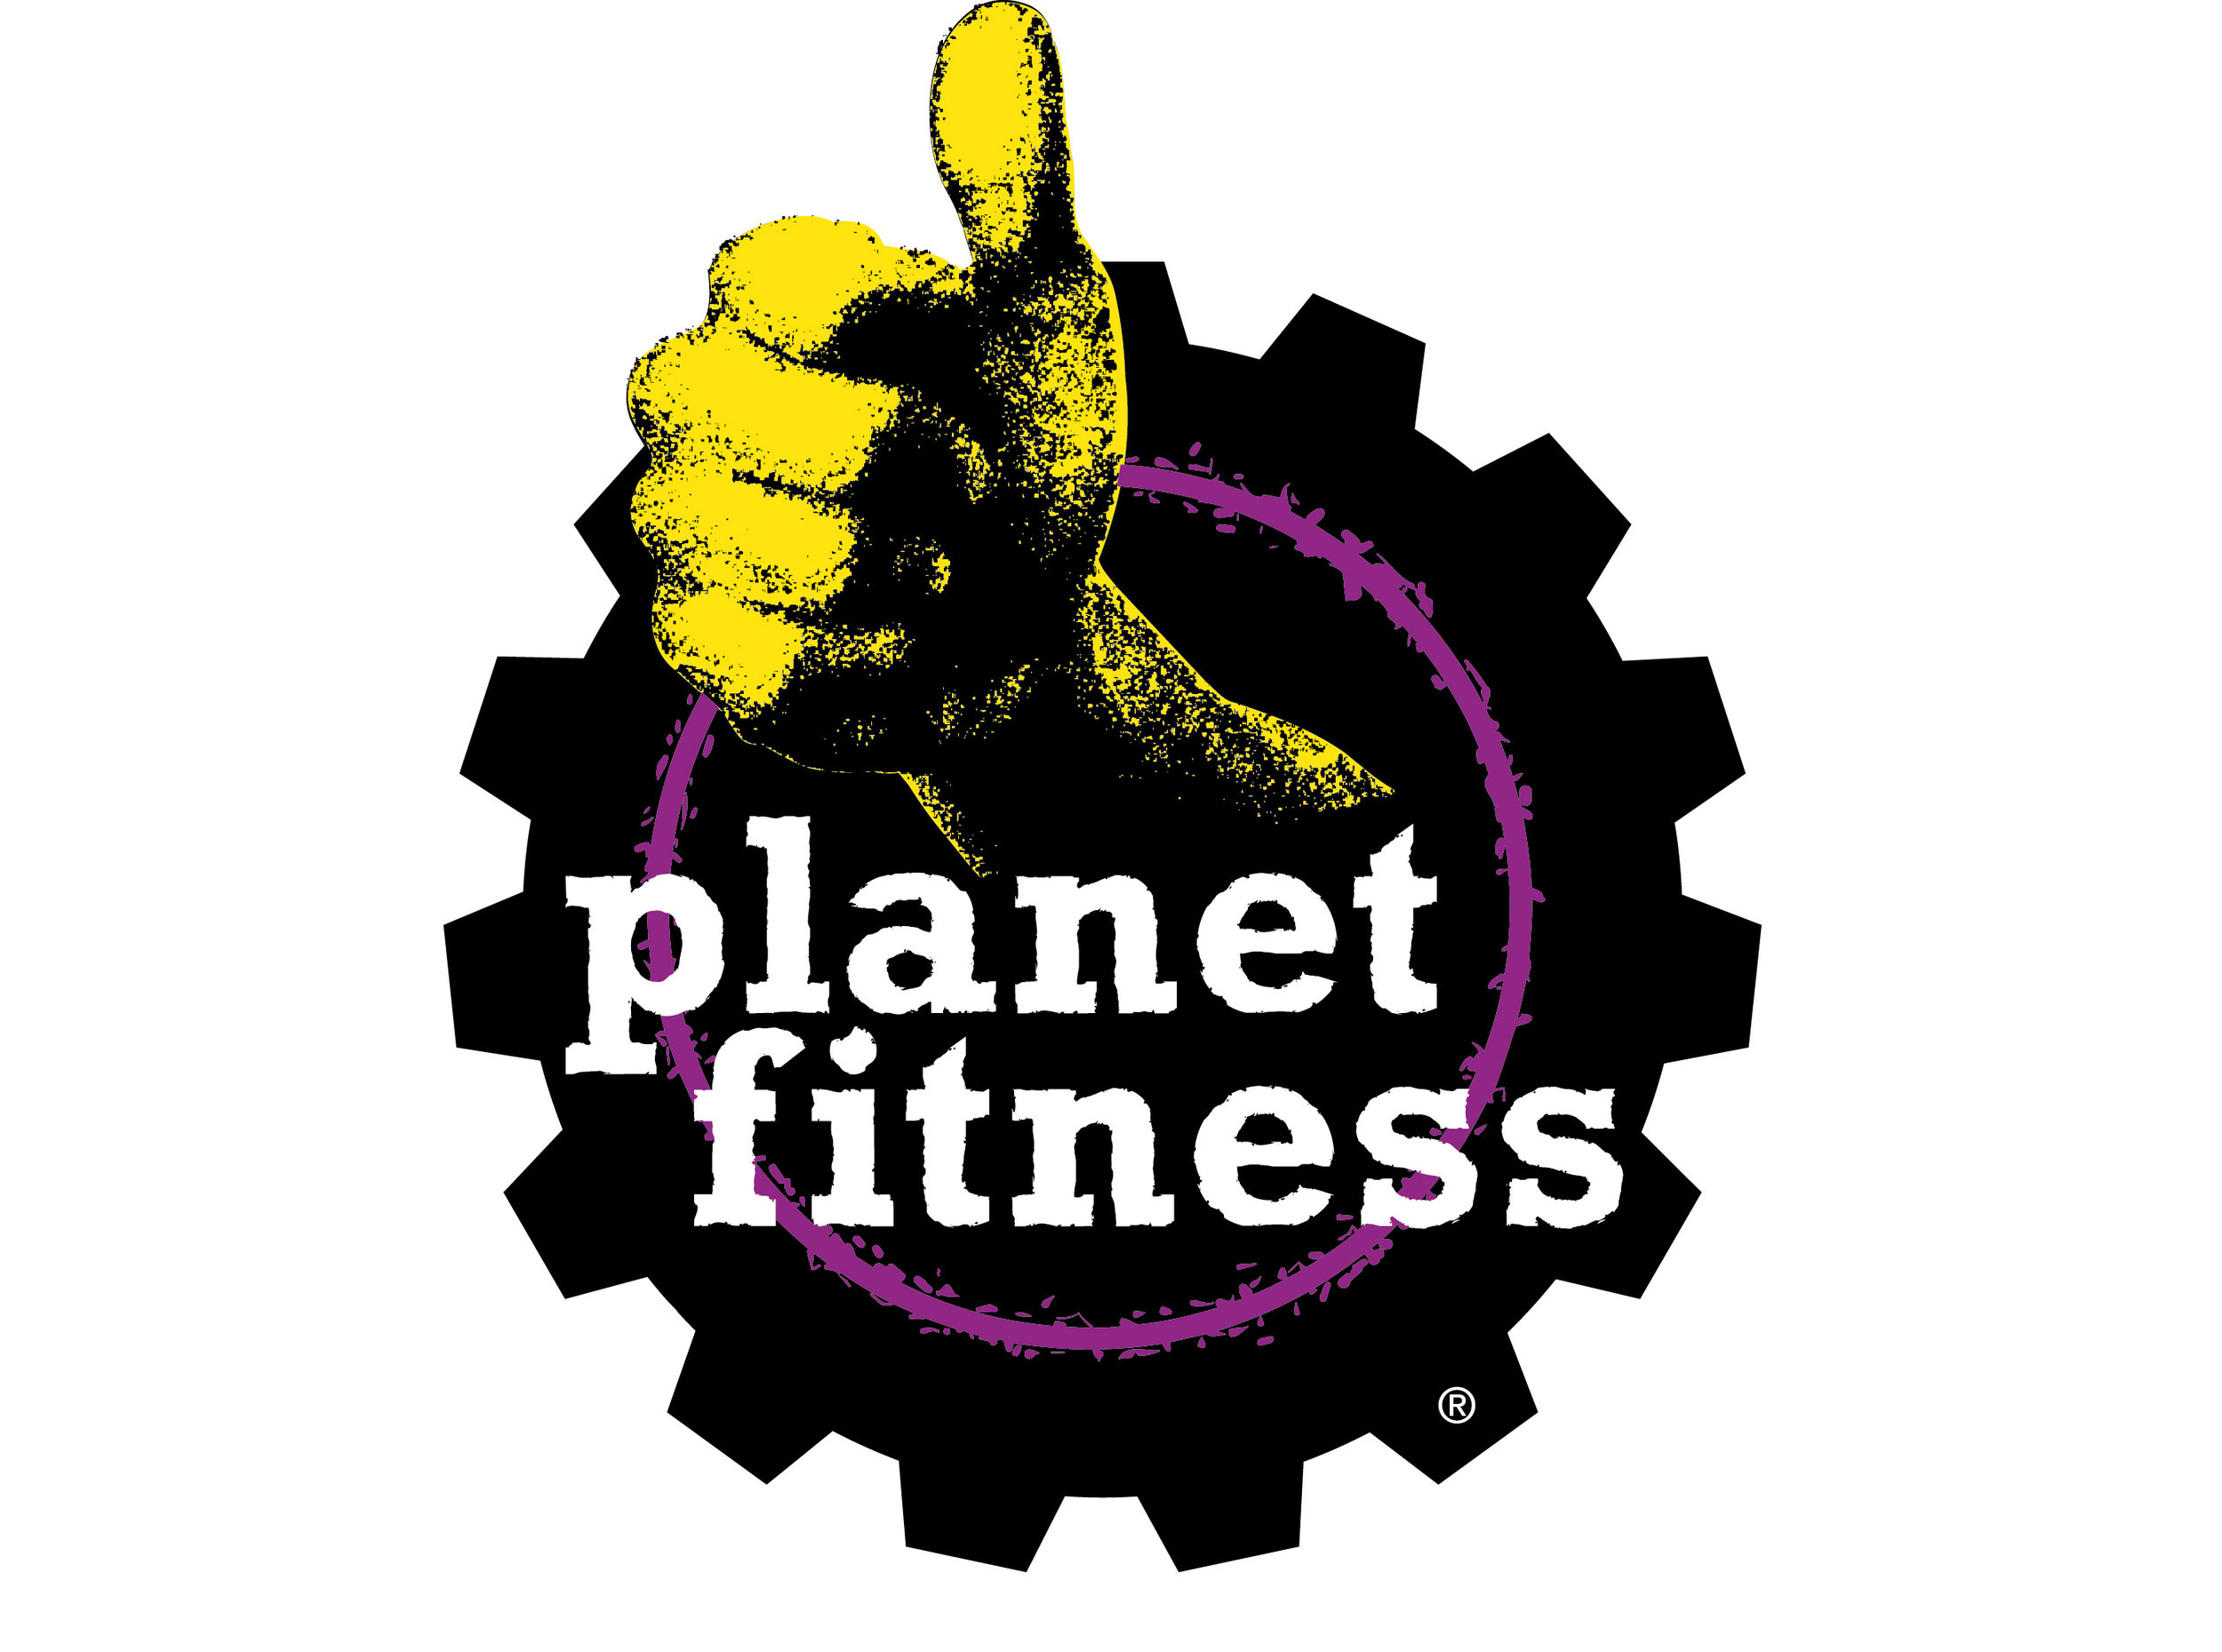 planet-fitness-logo copy.jpg